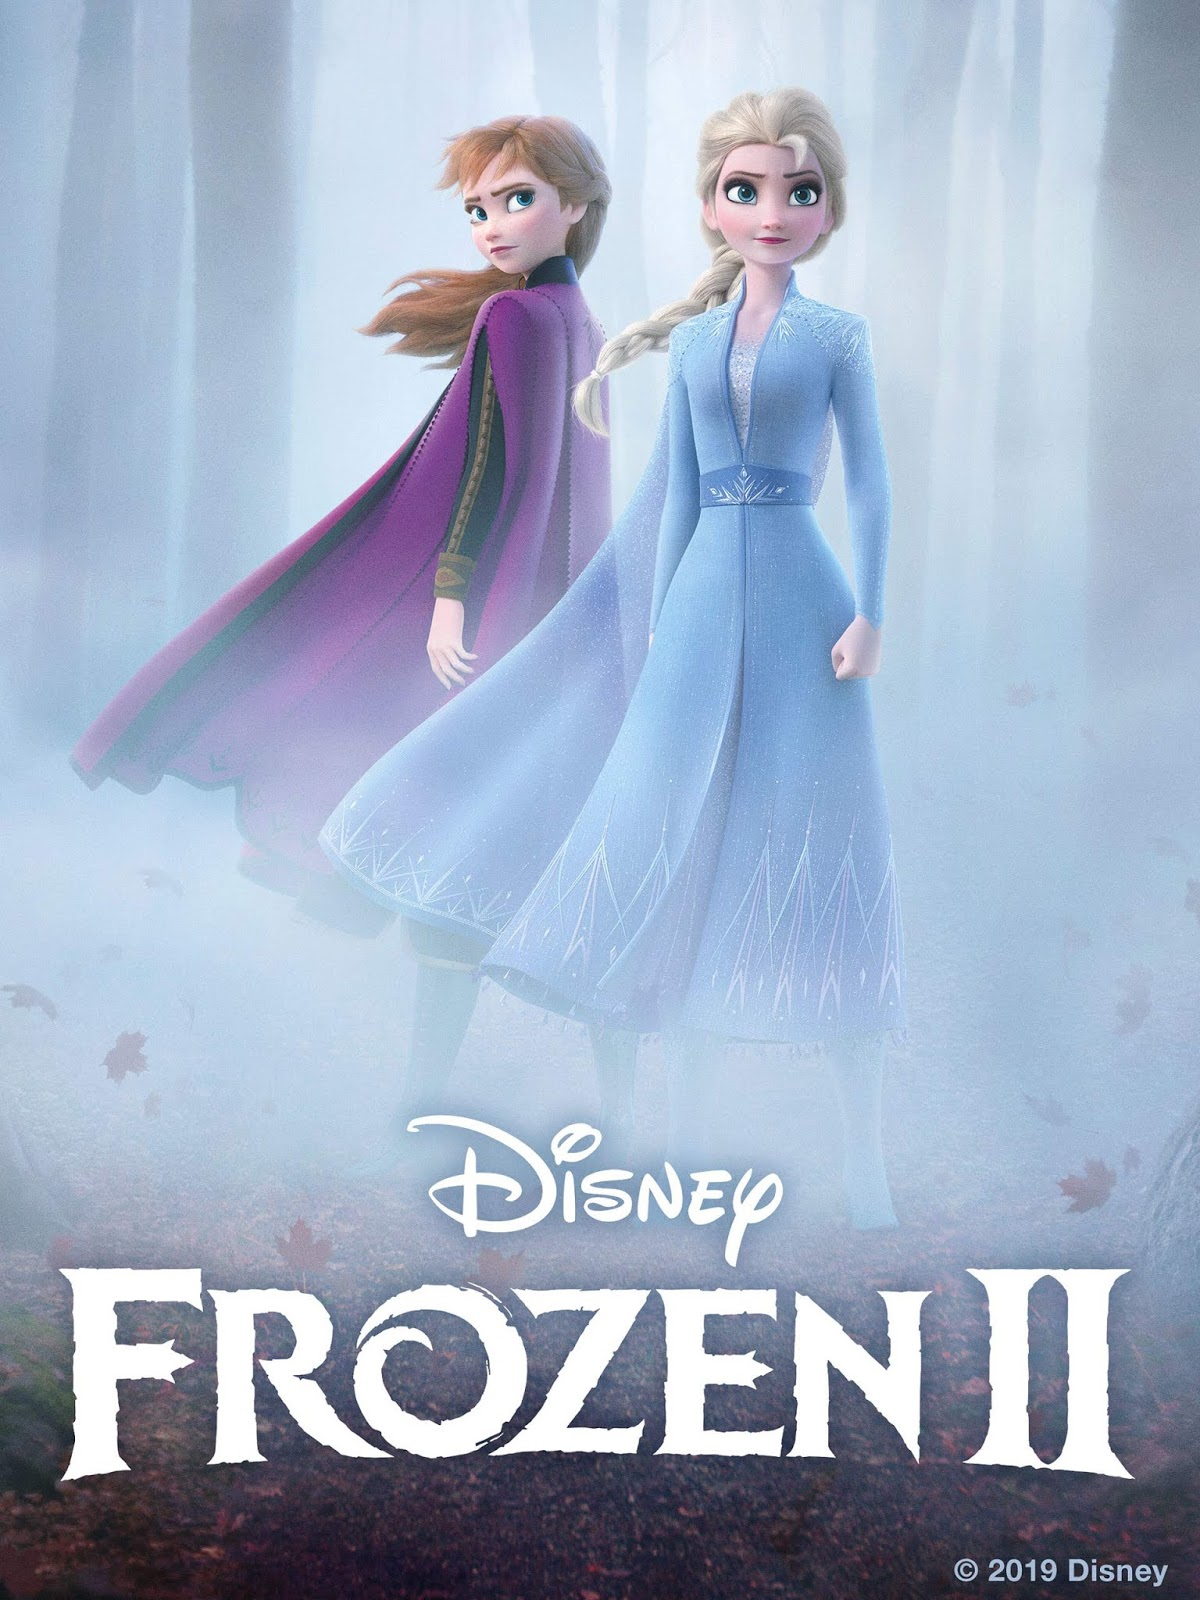 Frozen 2: The highest grossing animated movie in history